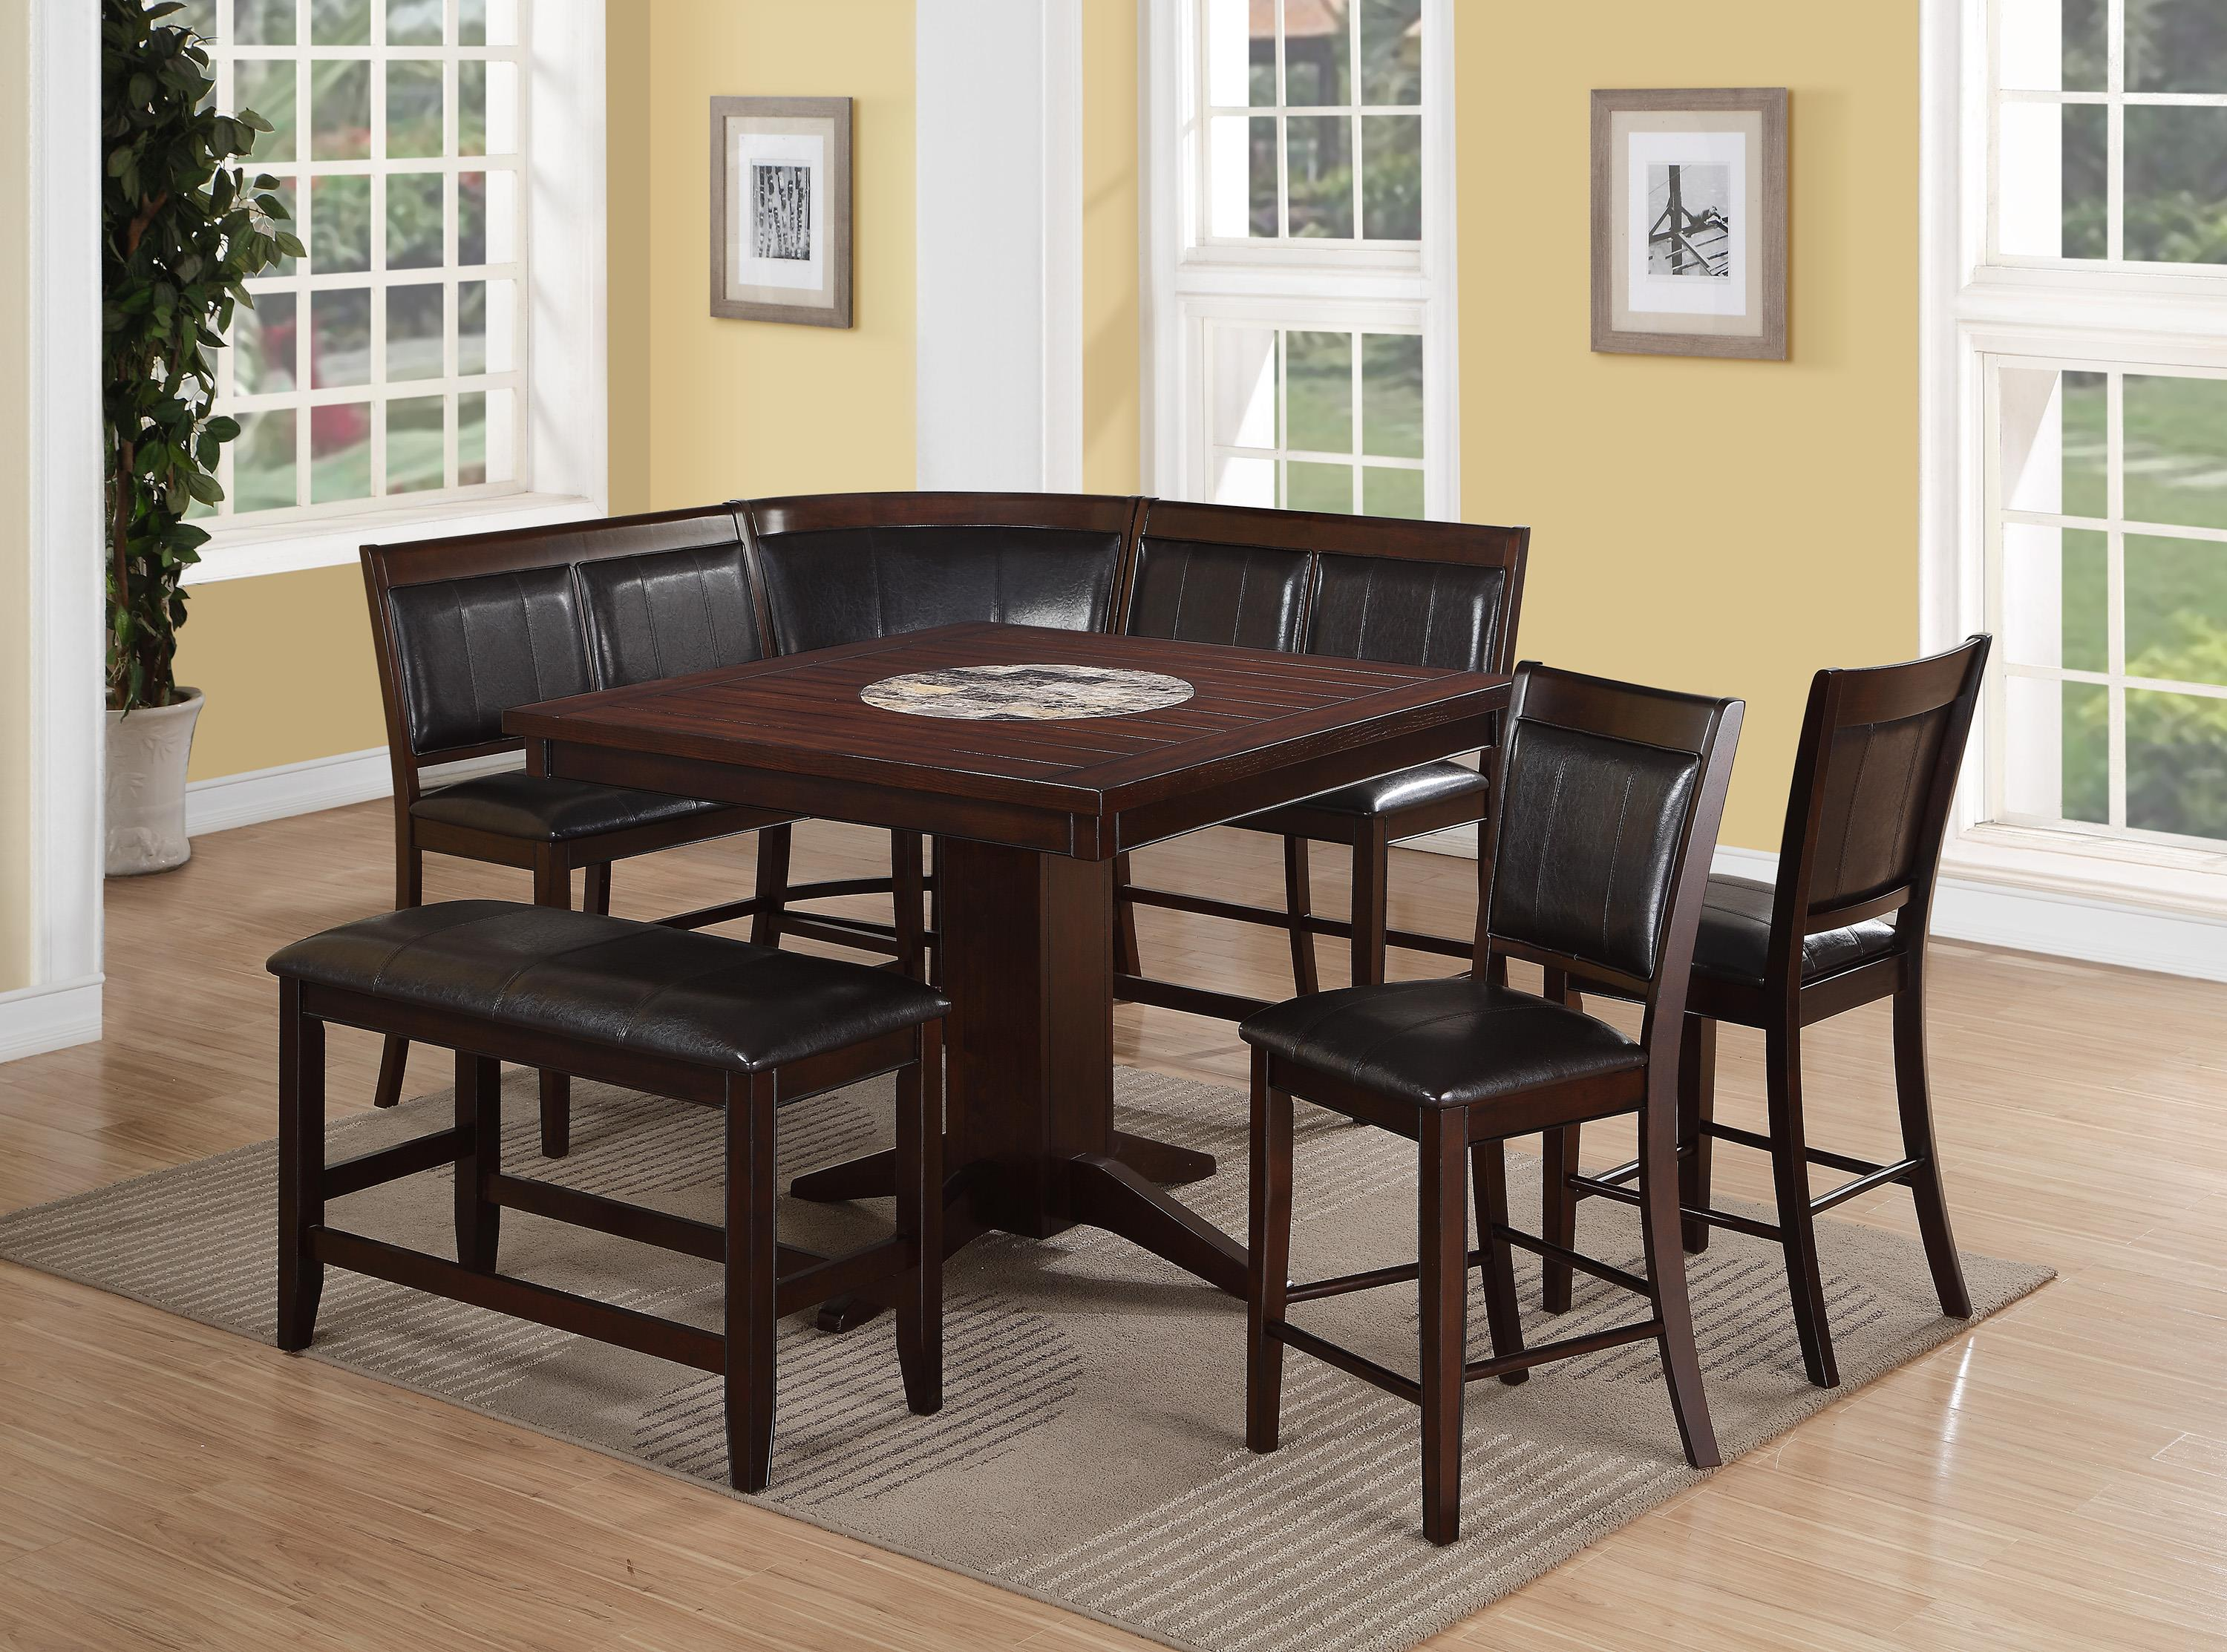 Crown mark harrison 7 piece counter height dining set with for 7 piece dining set with bench